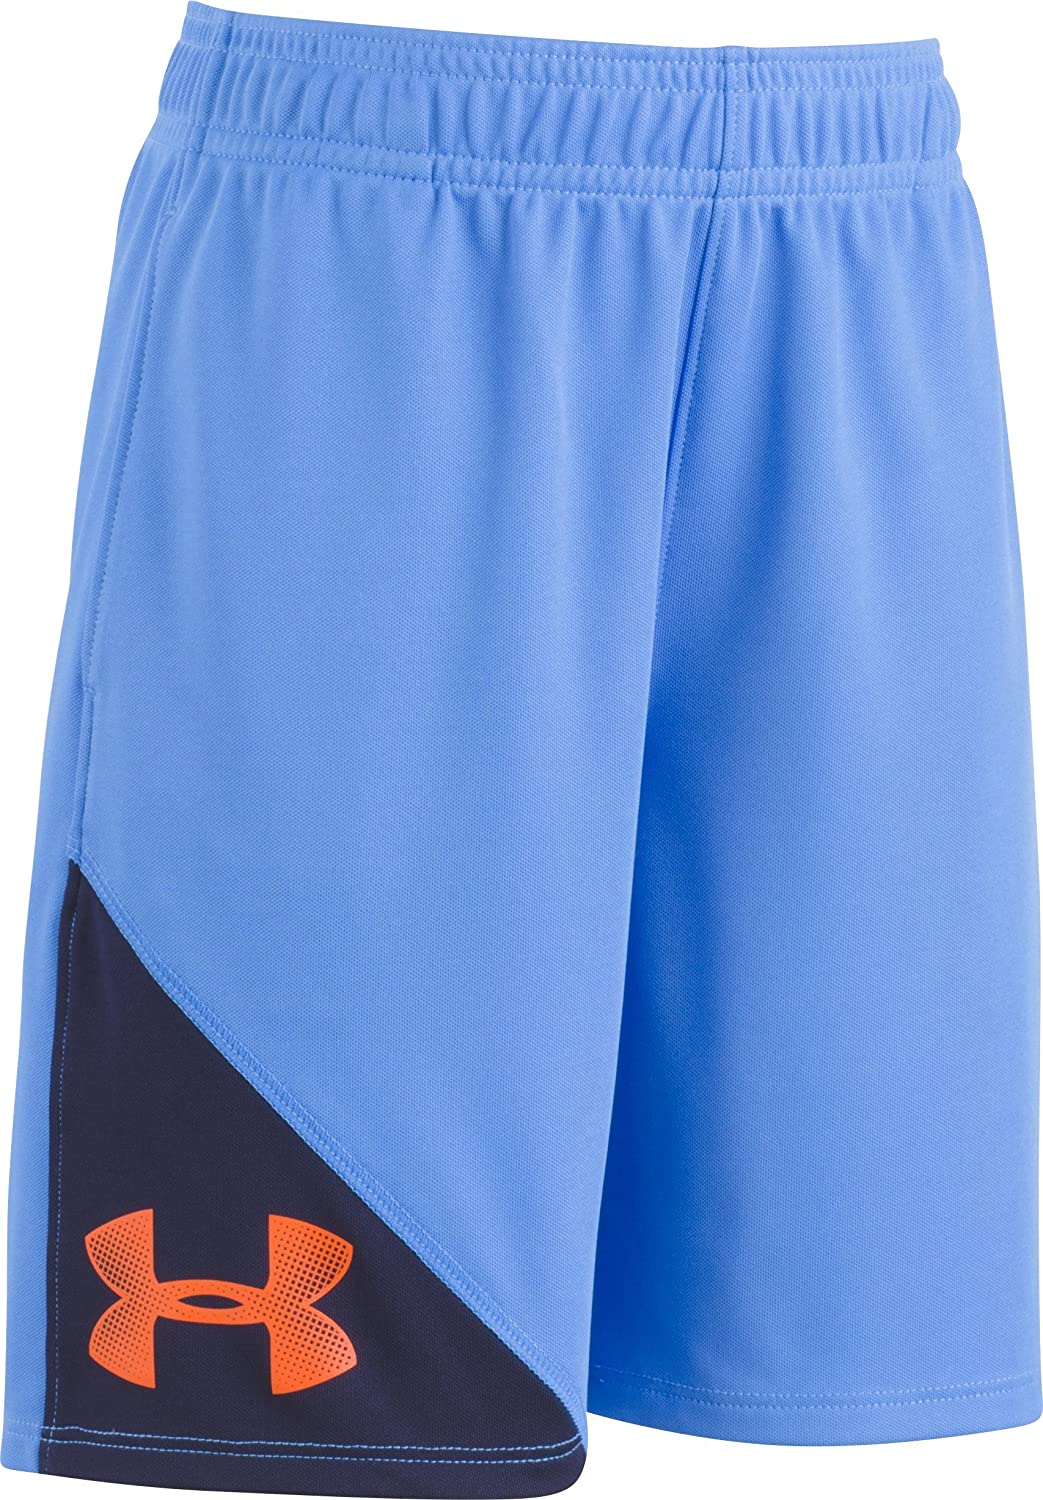 Under Armour SHORTS ベビー・ボーイズ